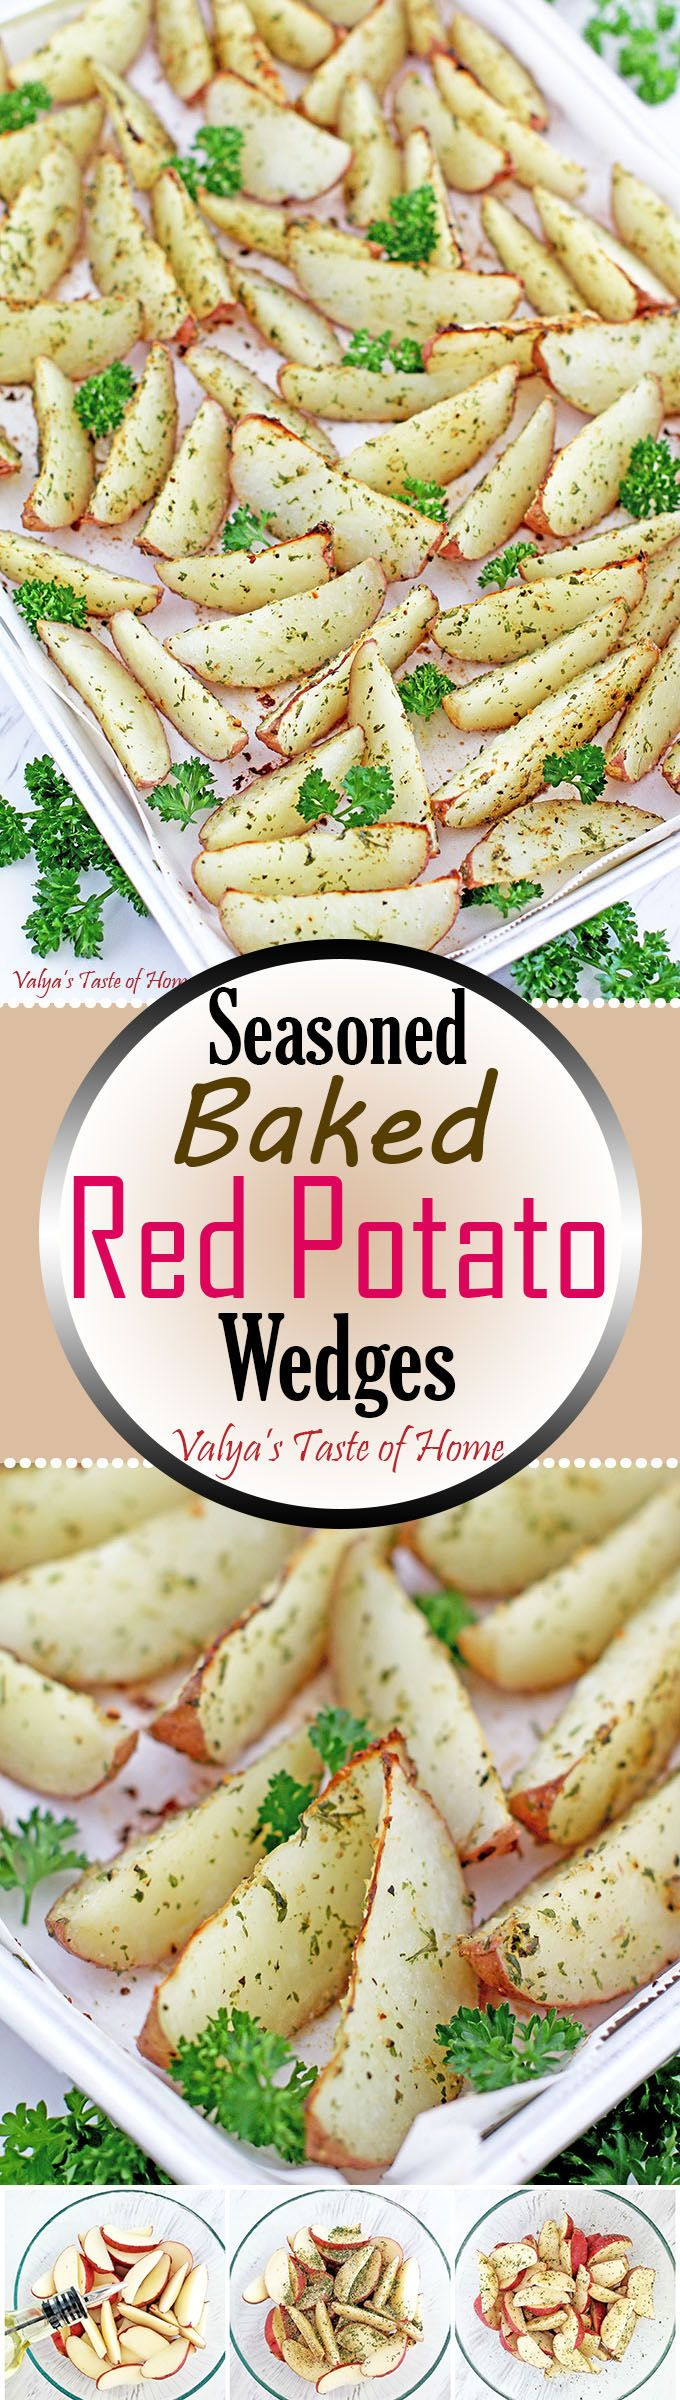 These Seasoned Baked Red Potato Wedges are sprinkled with olive oil, seasoned with garlic salt, parsley, Mrs. Dash seasoning, baked to perfection, and are a wonderful, quick meal that is absolutely scrumptious. A little crunchy on the outside, perfectly soft on the inside and so tasty! It makes a perfect side dish, for dipping into ketchup, ranch...etc, or for a fantastic dinner.